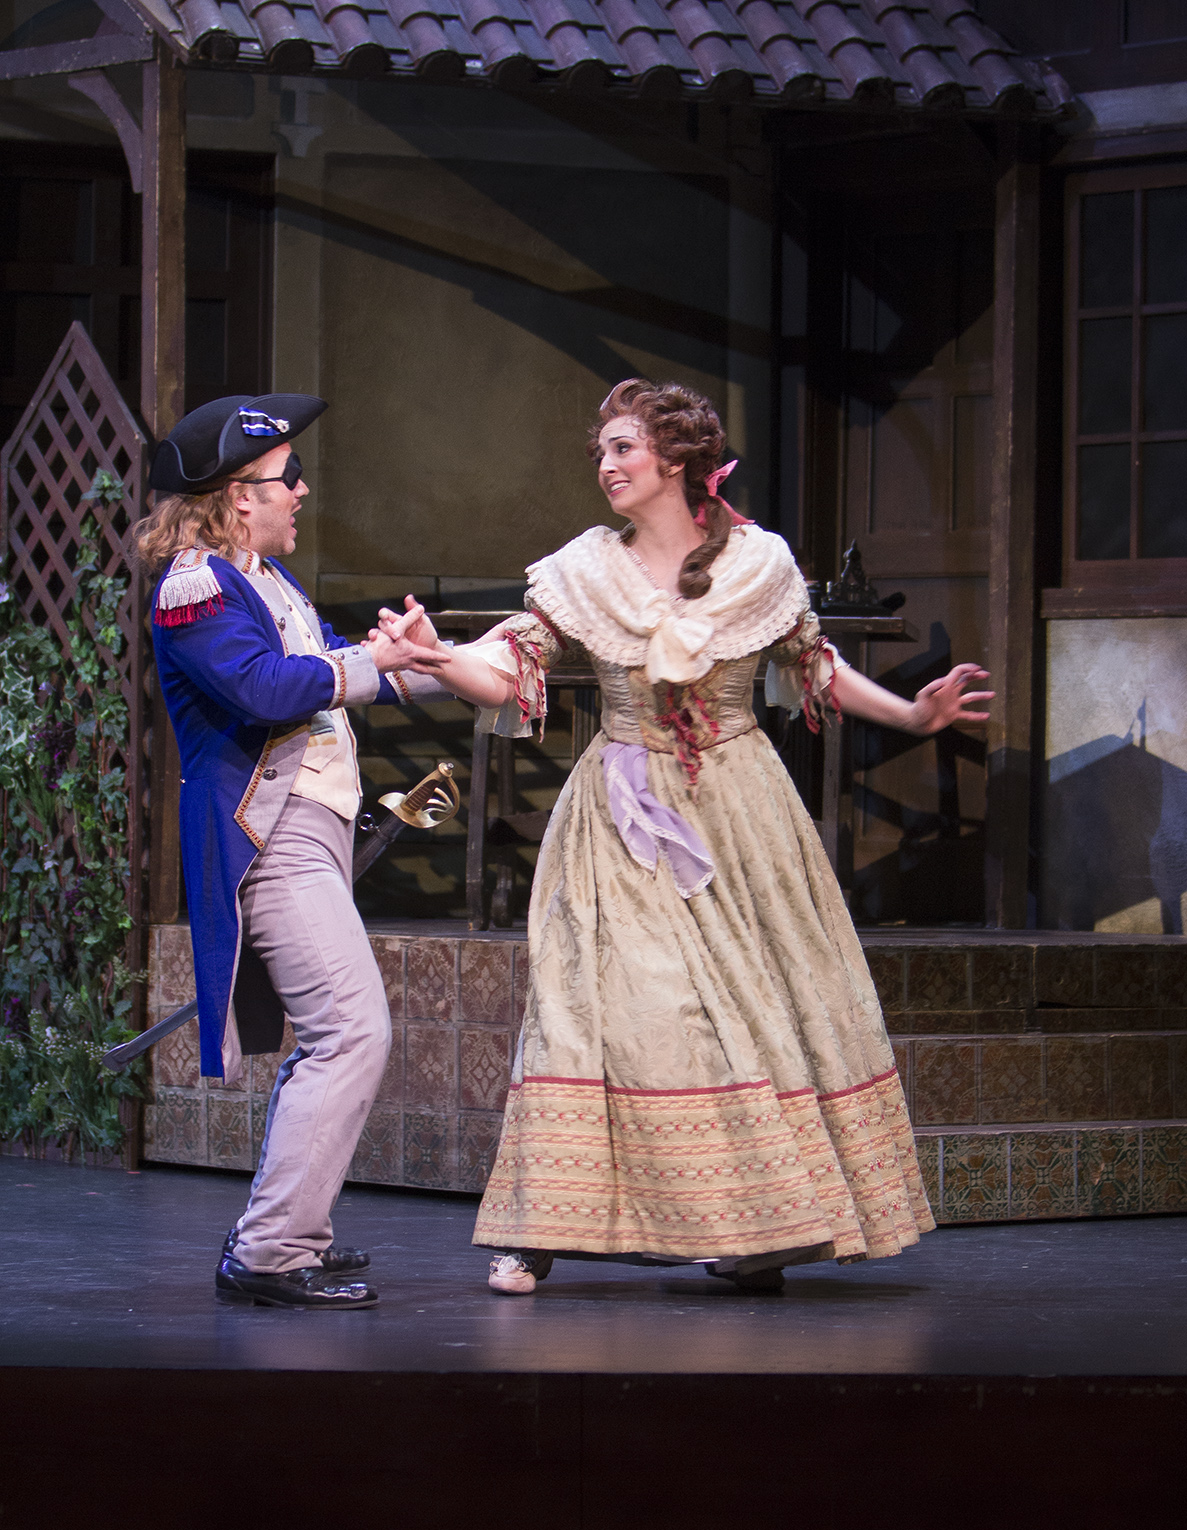 IN PERFORMANCE: tenor ANDREW OWENS as Conte Almaviva (left) and mezzo-soprano CECELIA HALL as Rosina (right) in Greensboro Opera's production of Gioachino Rossini's IL BARBIERE DI SIVIGLIA, January 2018 [Photo by Star Path Images, © by Greensboro Opera]